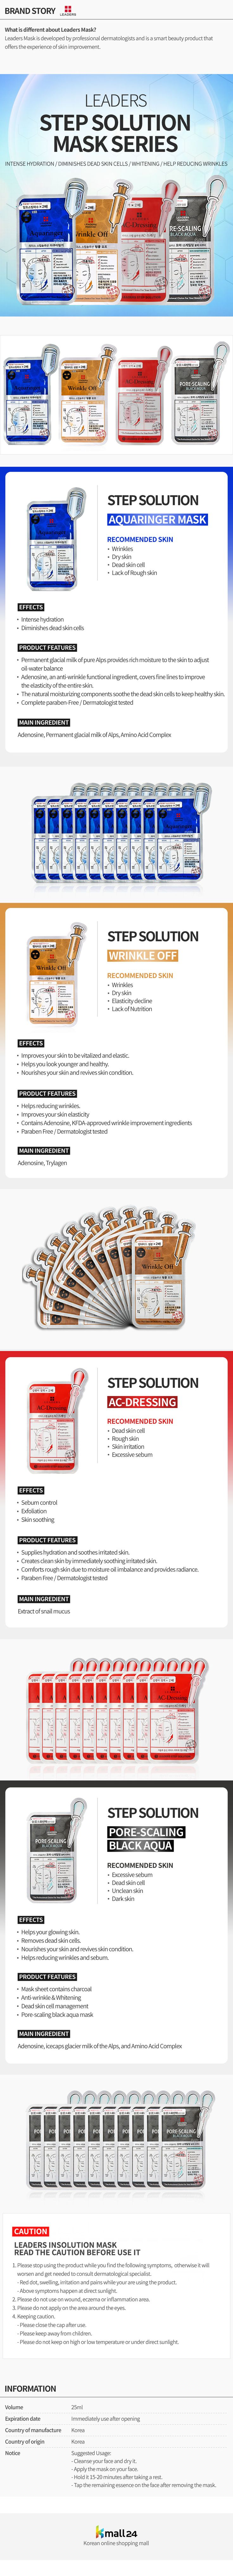 [LEADERS] STEP SOLUTION SERIES Mask Sheet x 10pcs